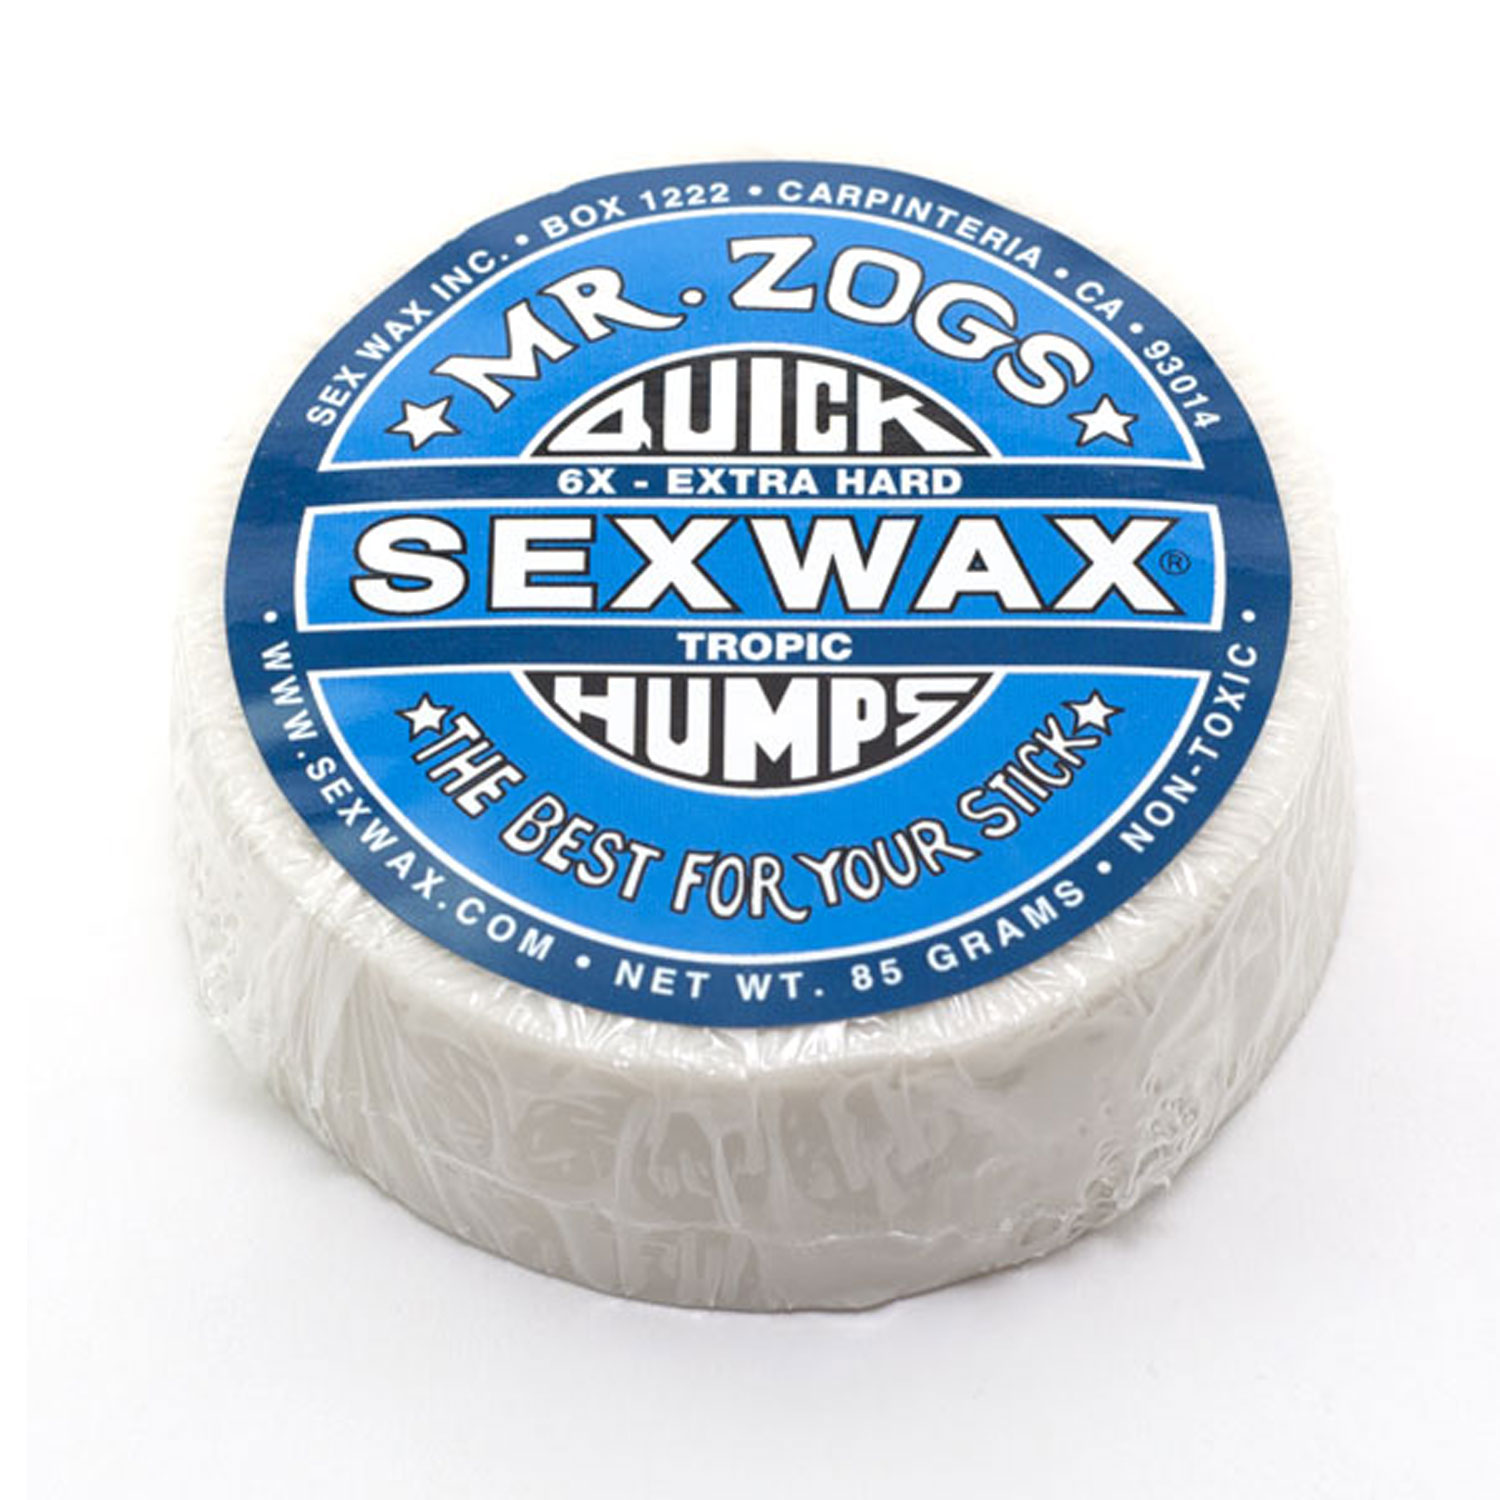 Sex wax surfboard